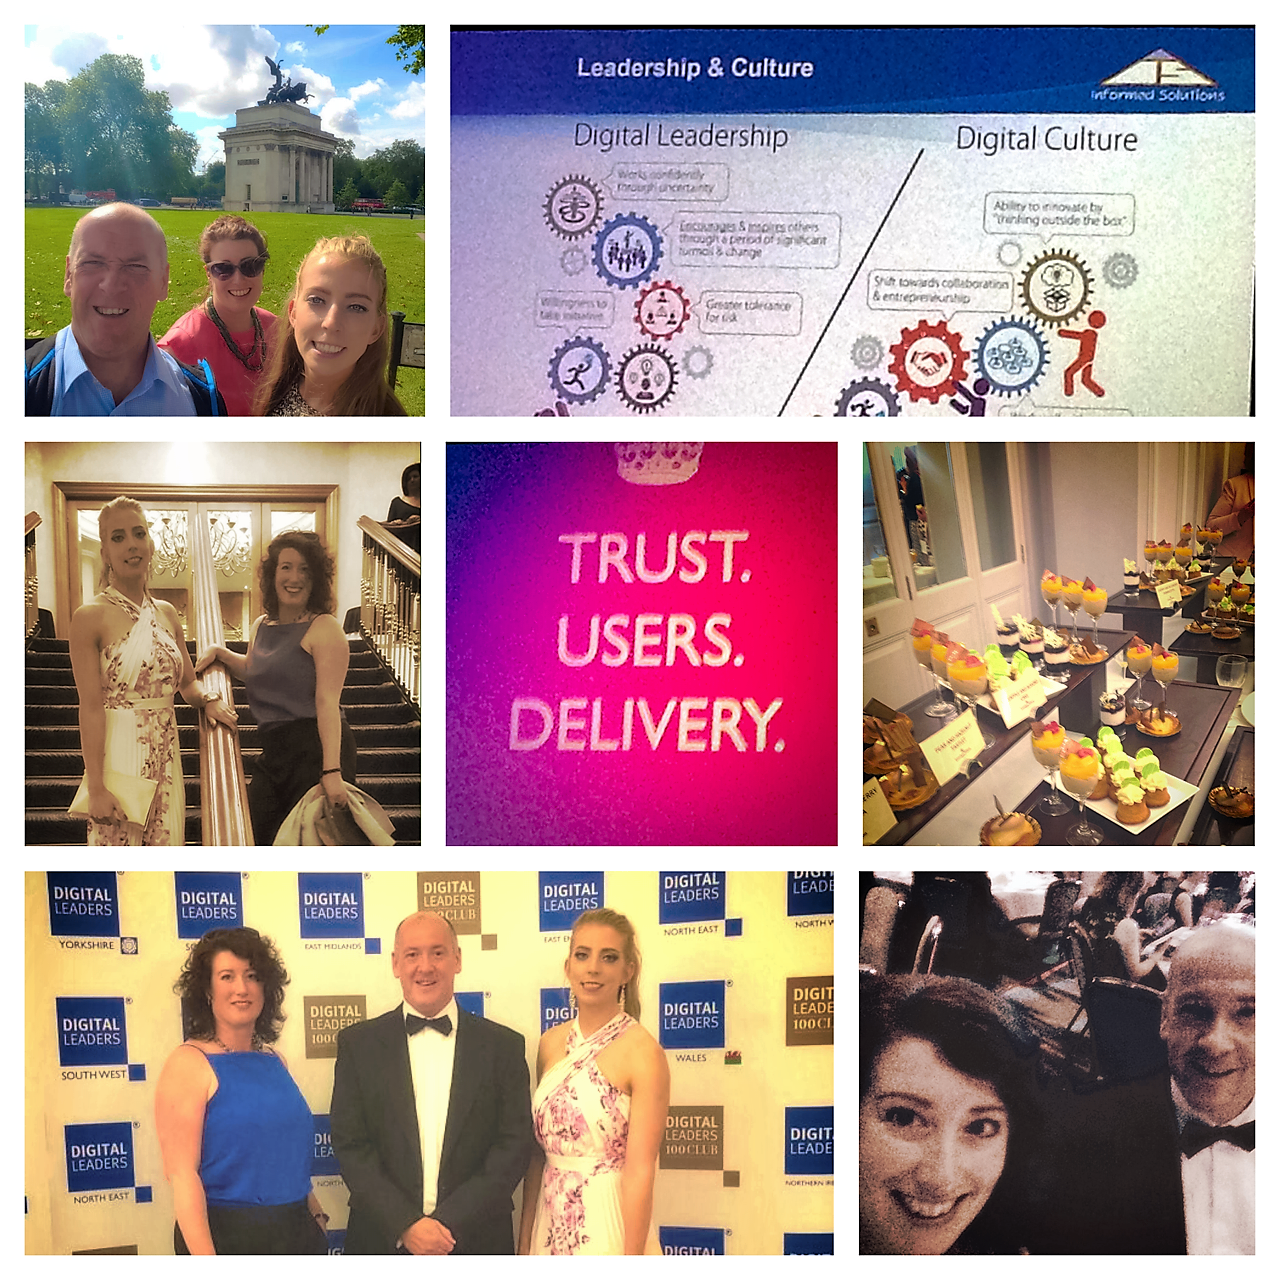 Colm, Stef, and Healy made the Trip to London to REPRESENT Supporting Communities at the Digital Leaders Awards.